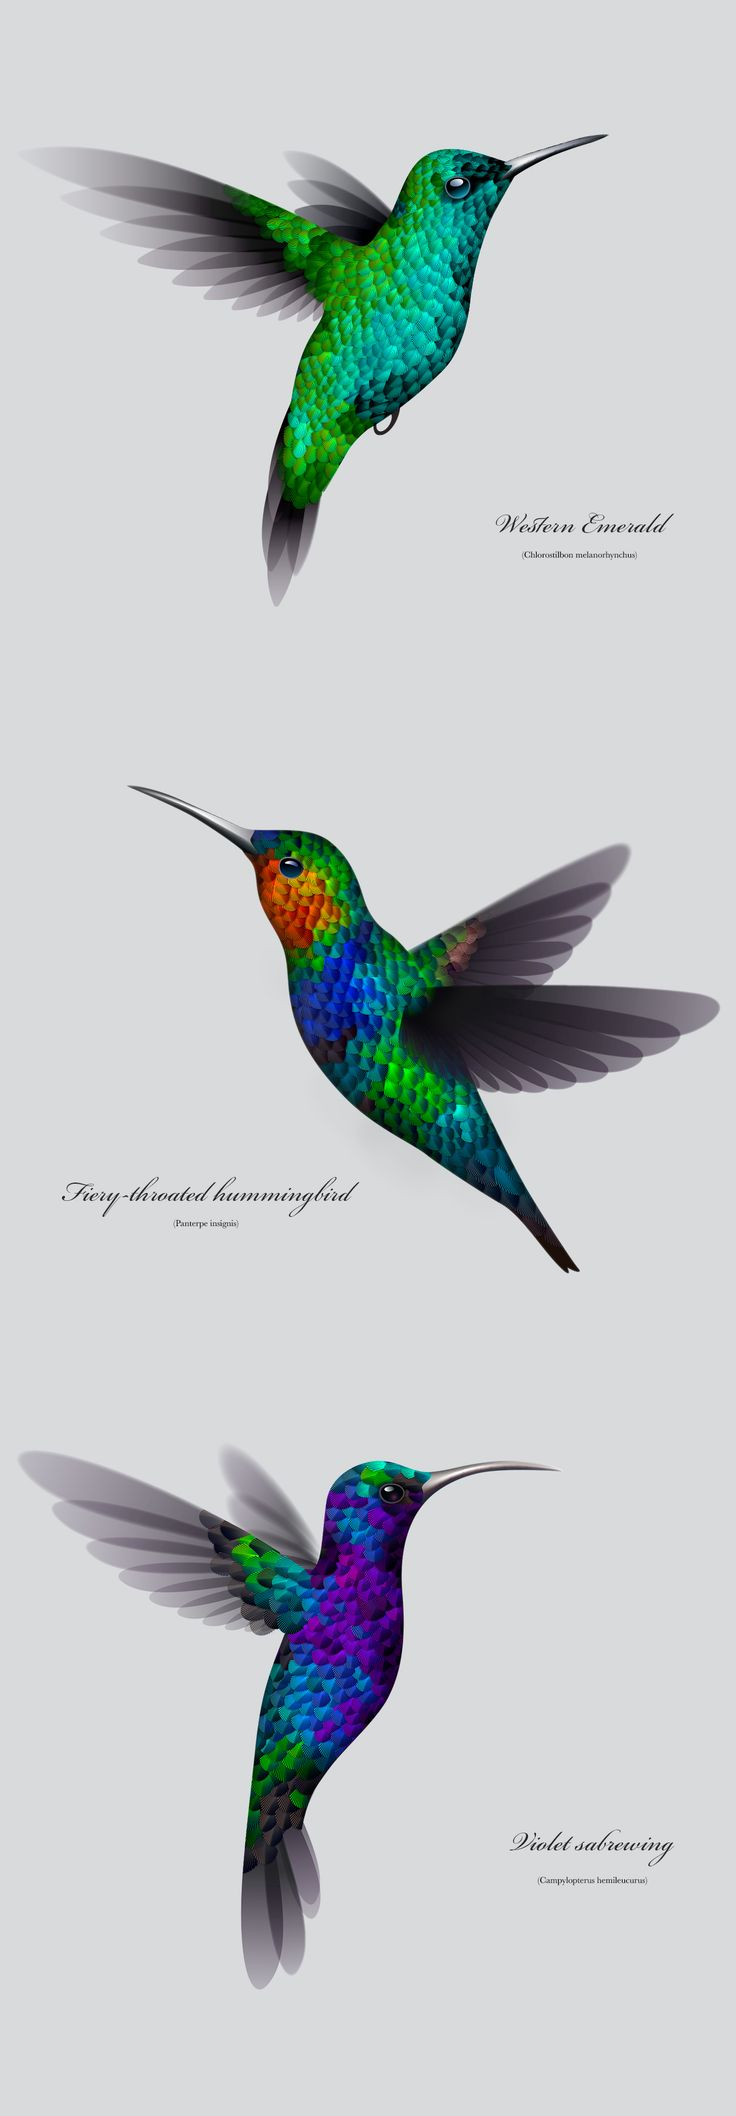 Illustrator Experiment: Making a Hummingbird | Create